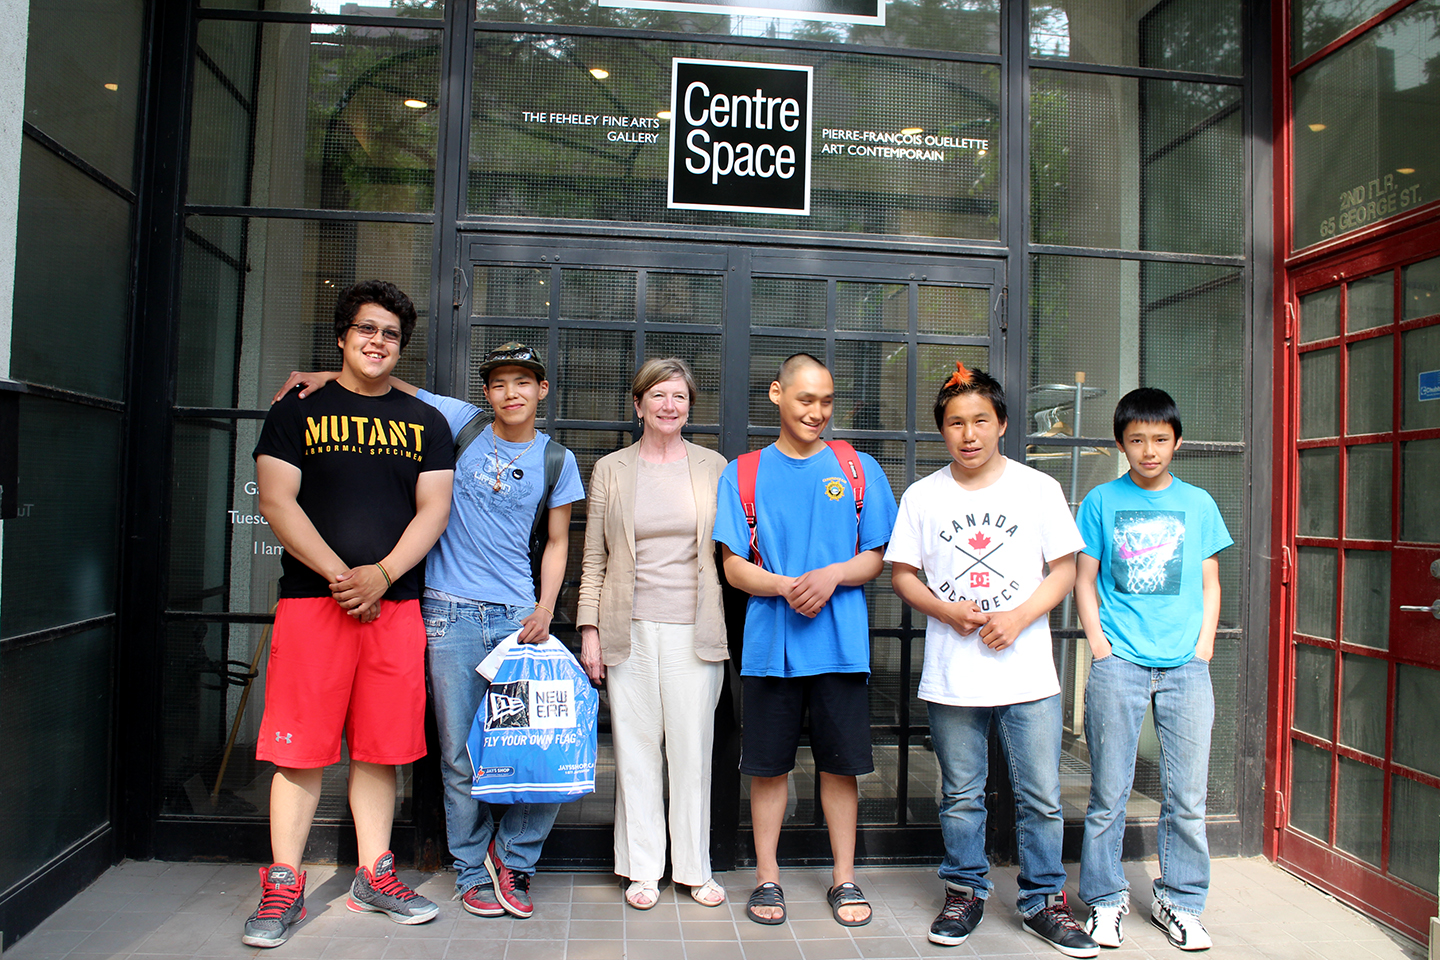 Parr, Cie, Audi, and Latch pose in front of Feheley Fine Arts Gallery with Patricia Feheley. Photo by Alexa Hatanaka.